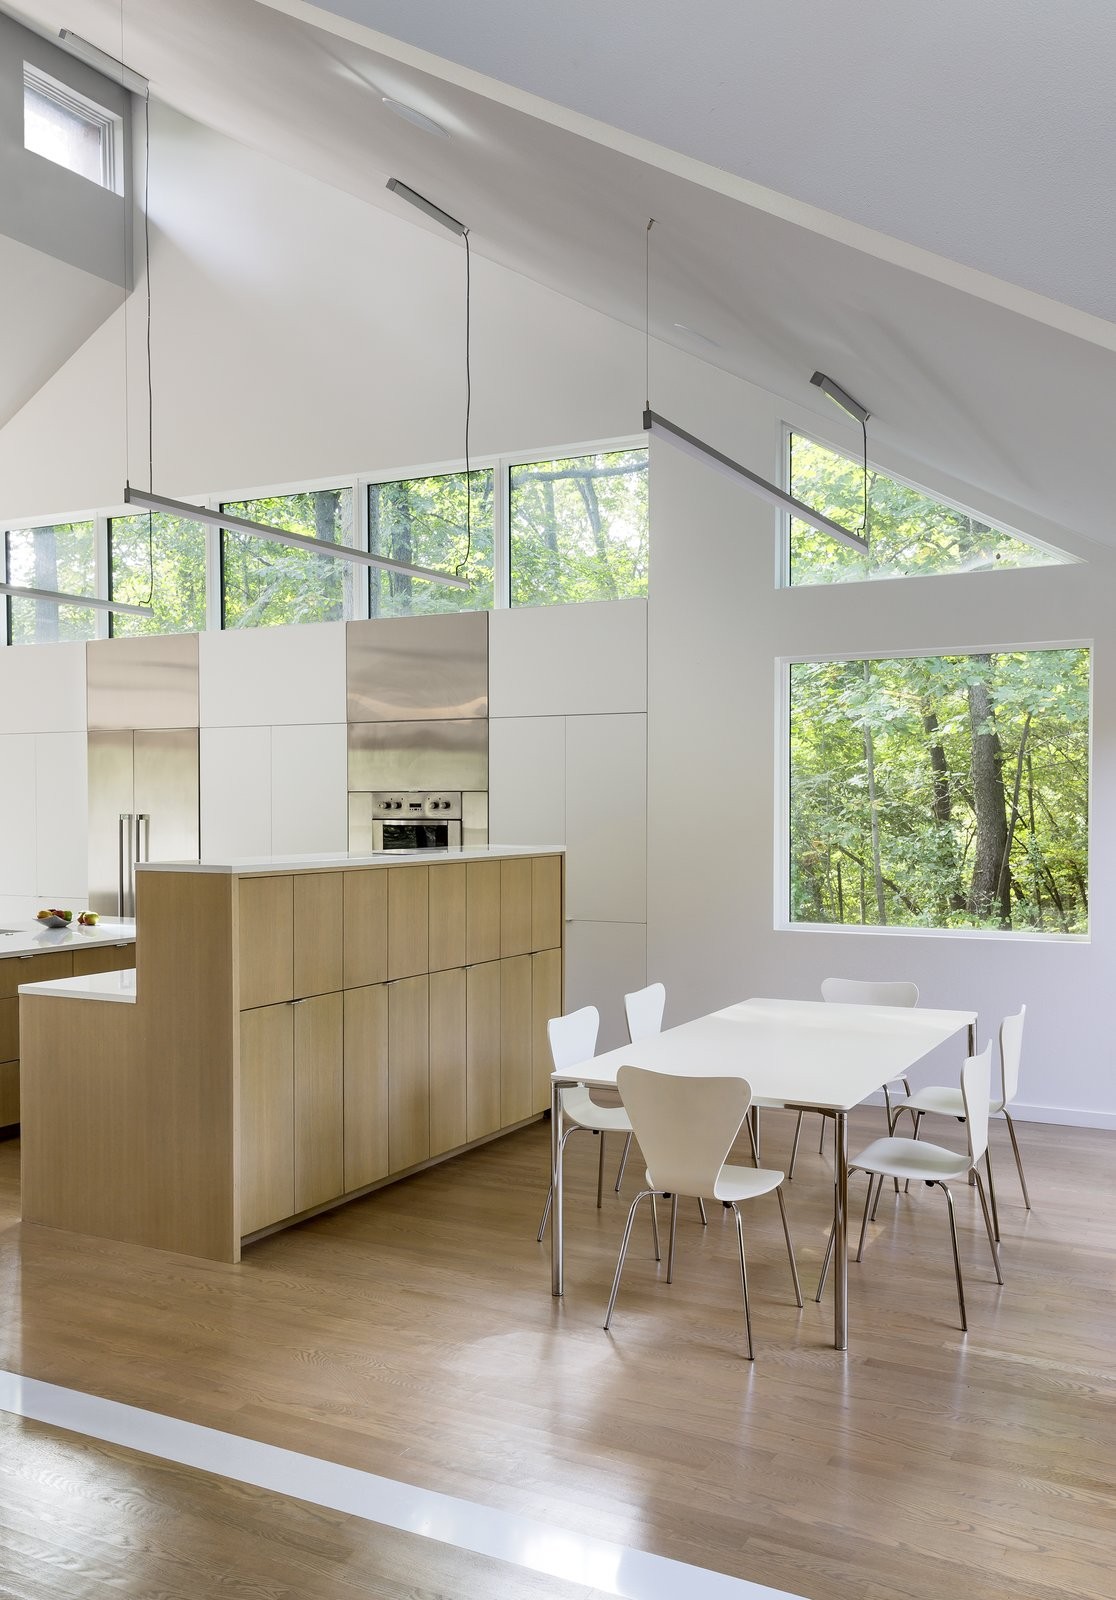 Dining Room, Table, Chair, and Light Hardwood Floor  3LP Residence by Substance Architecture